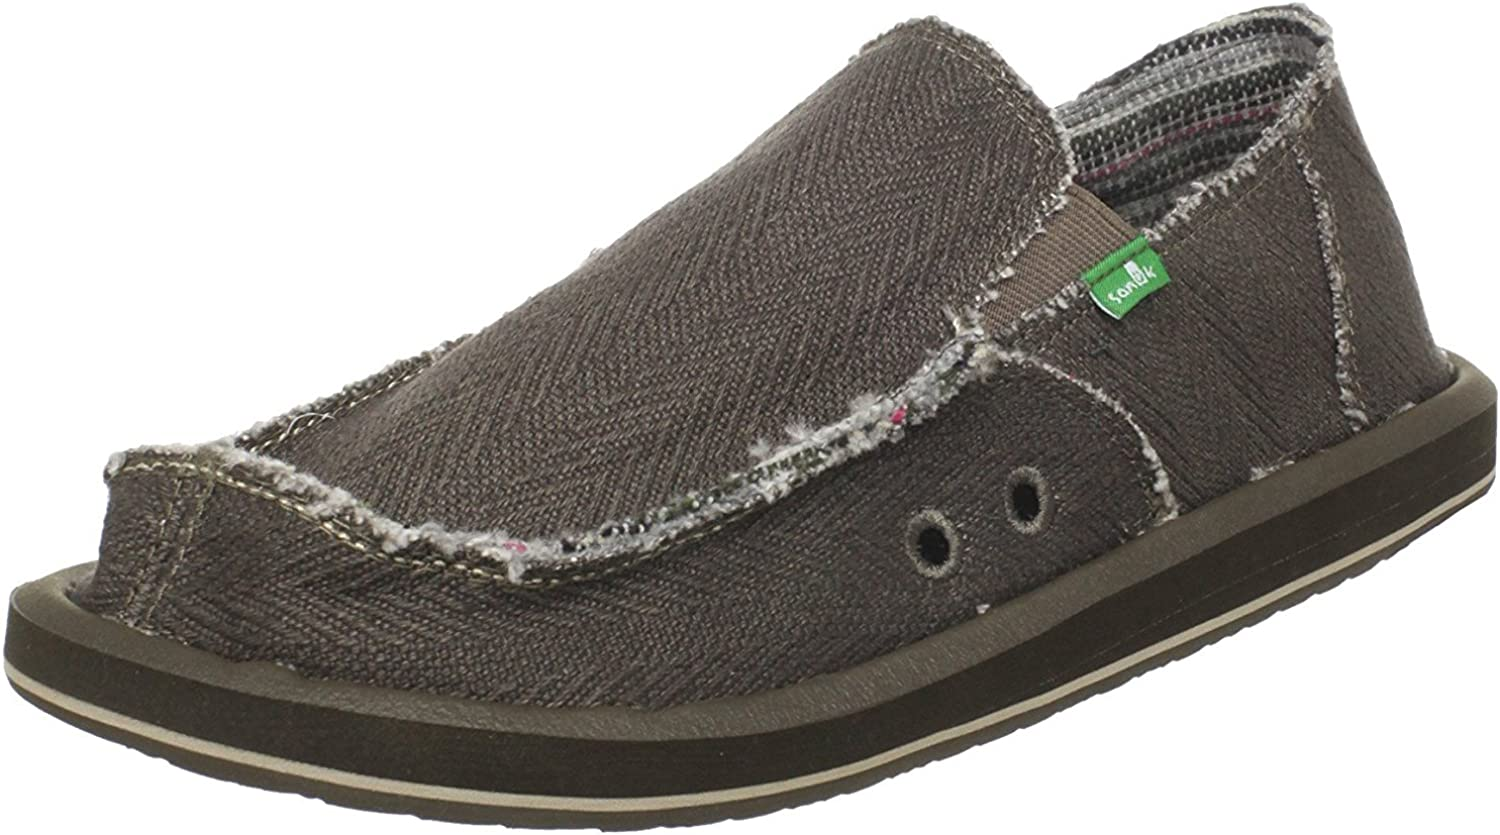 Sanuk Men's Hemp Sidewalk SurferBlack8 M (12 D(M) US   45 EUR, Olive)